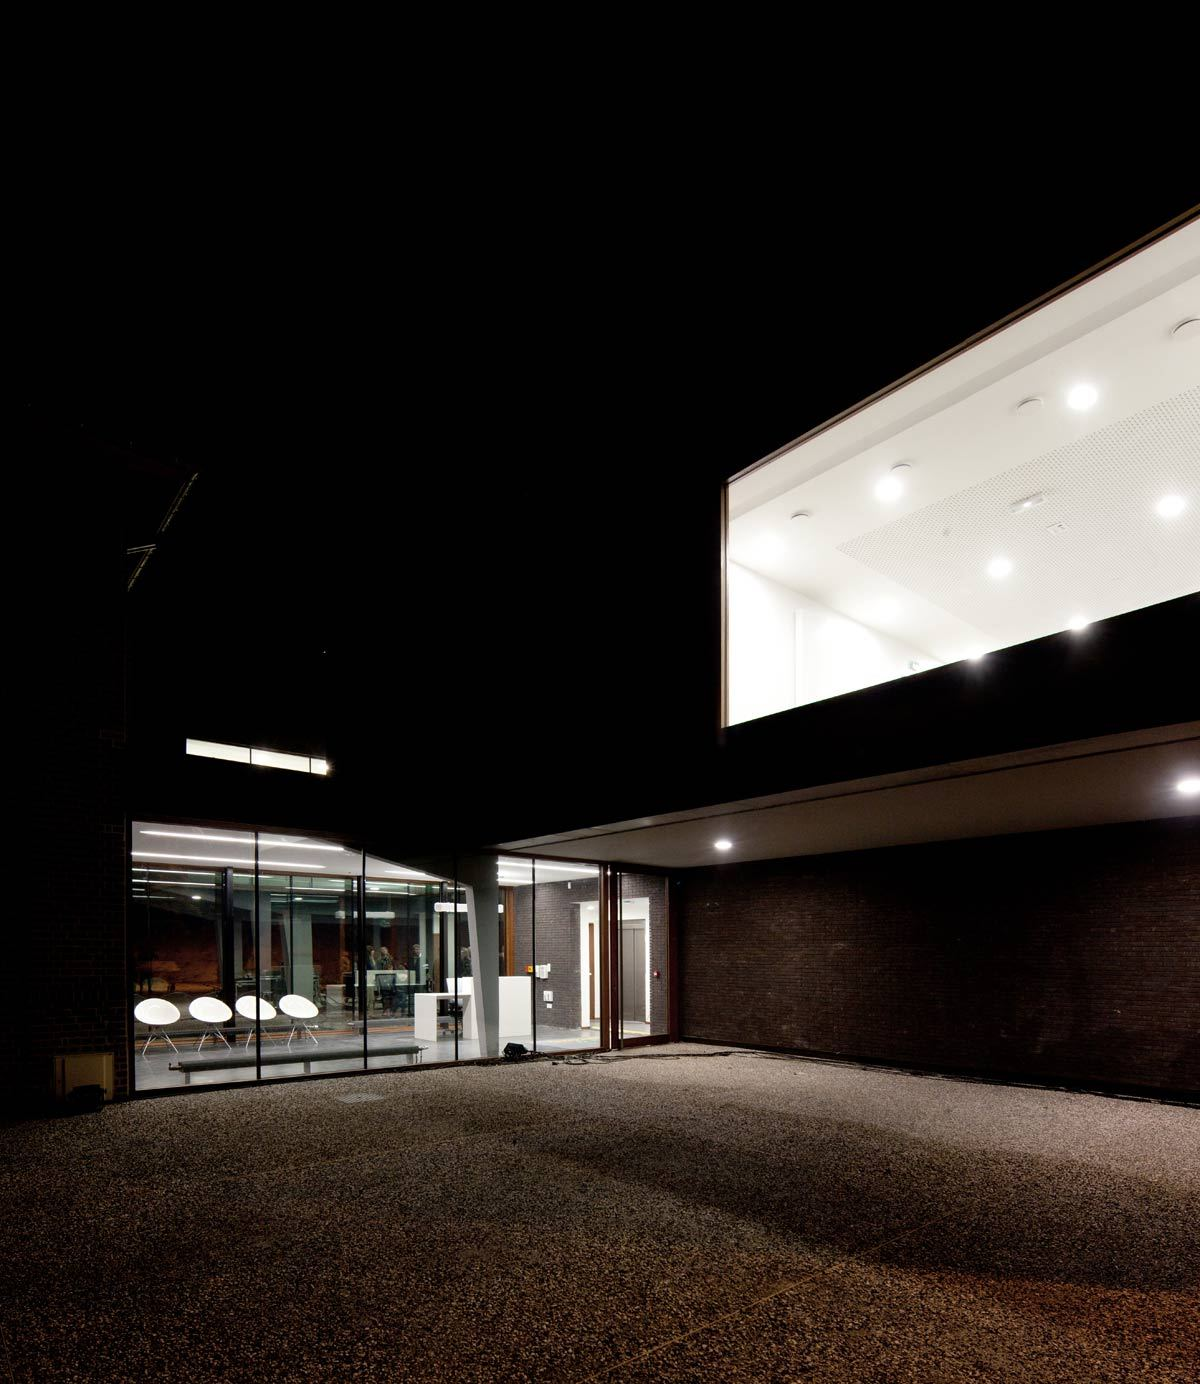 003_proville_inauguration_nuit